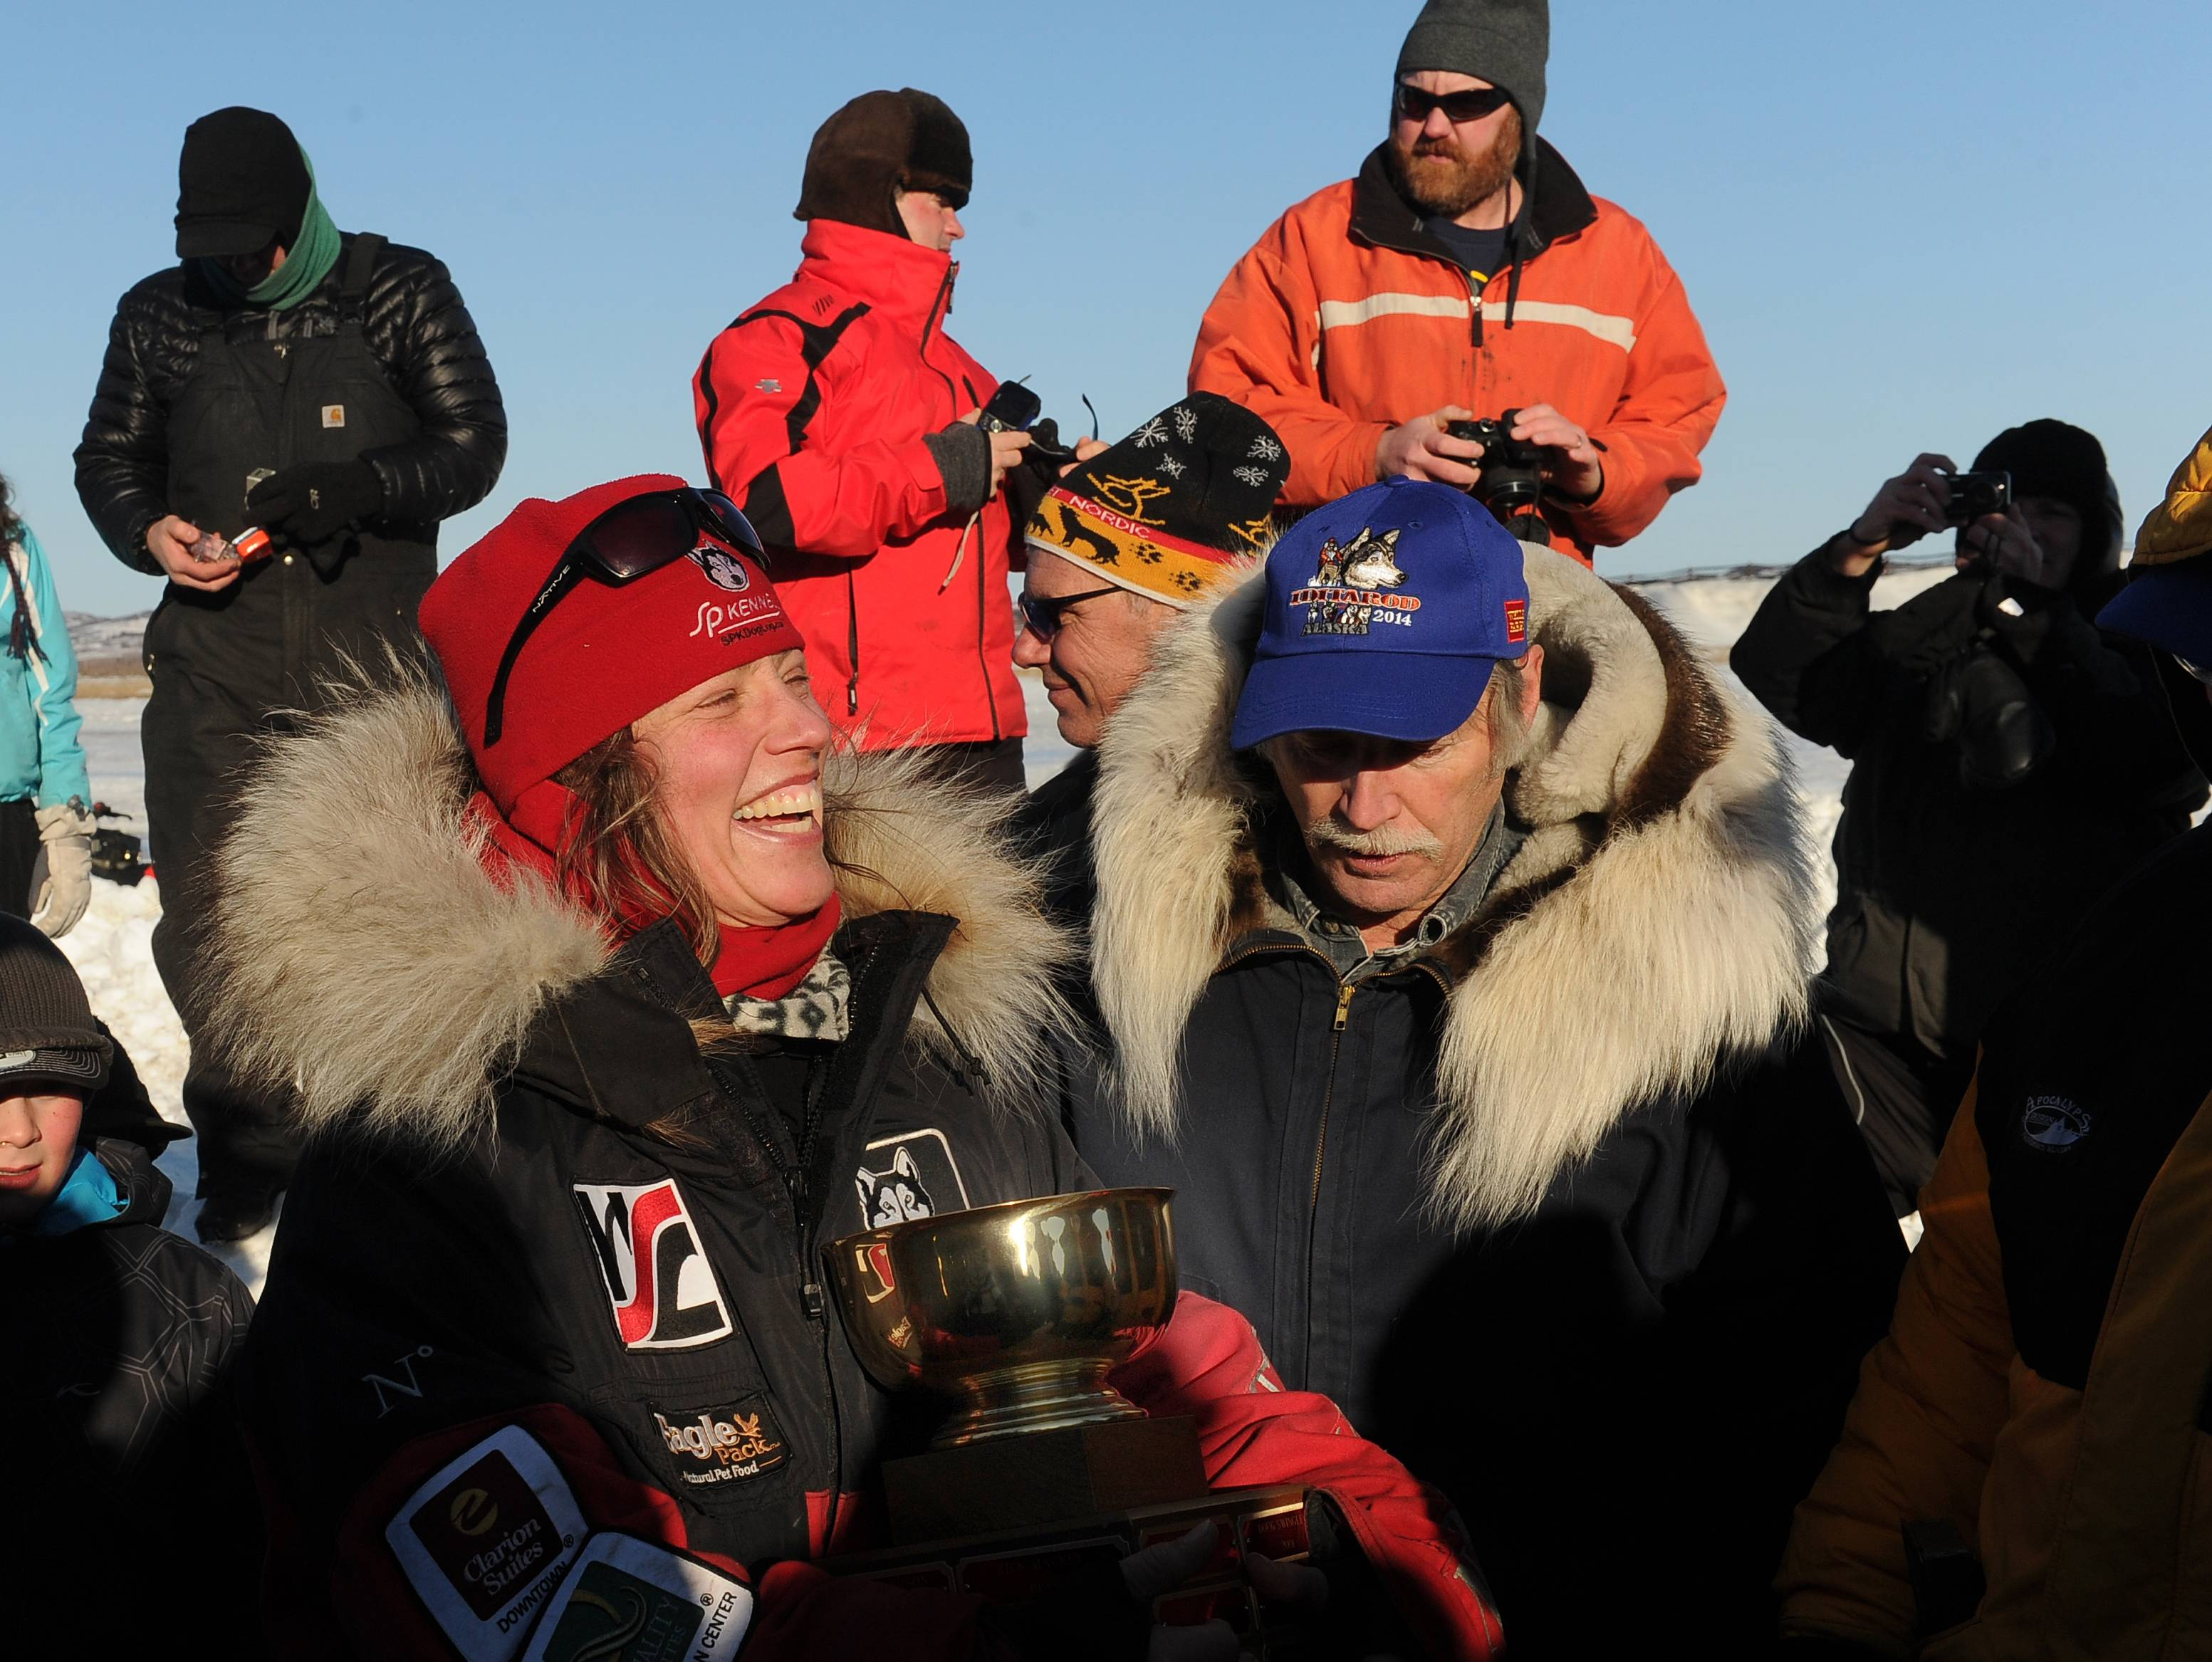 Aliy Zirkle accepts the Wells Fargo Gold Coast Award for the first musher to reach the Bering Sea in Unalakleet during the 2014 Iditarod Trail Sled Dog Race.